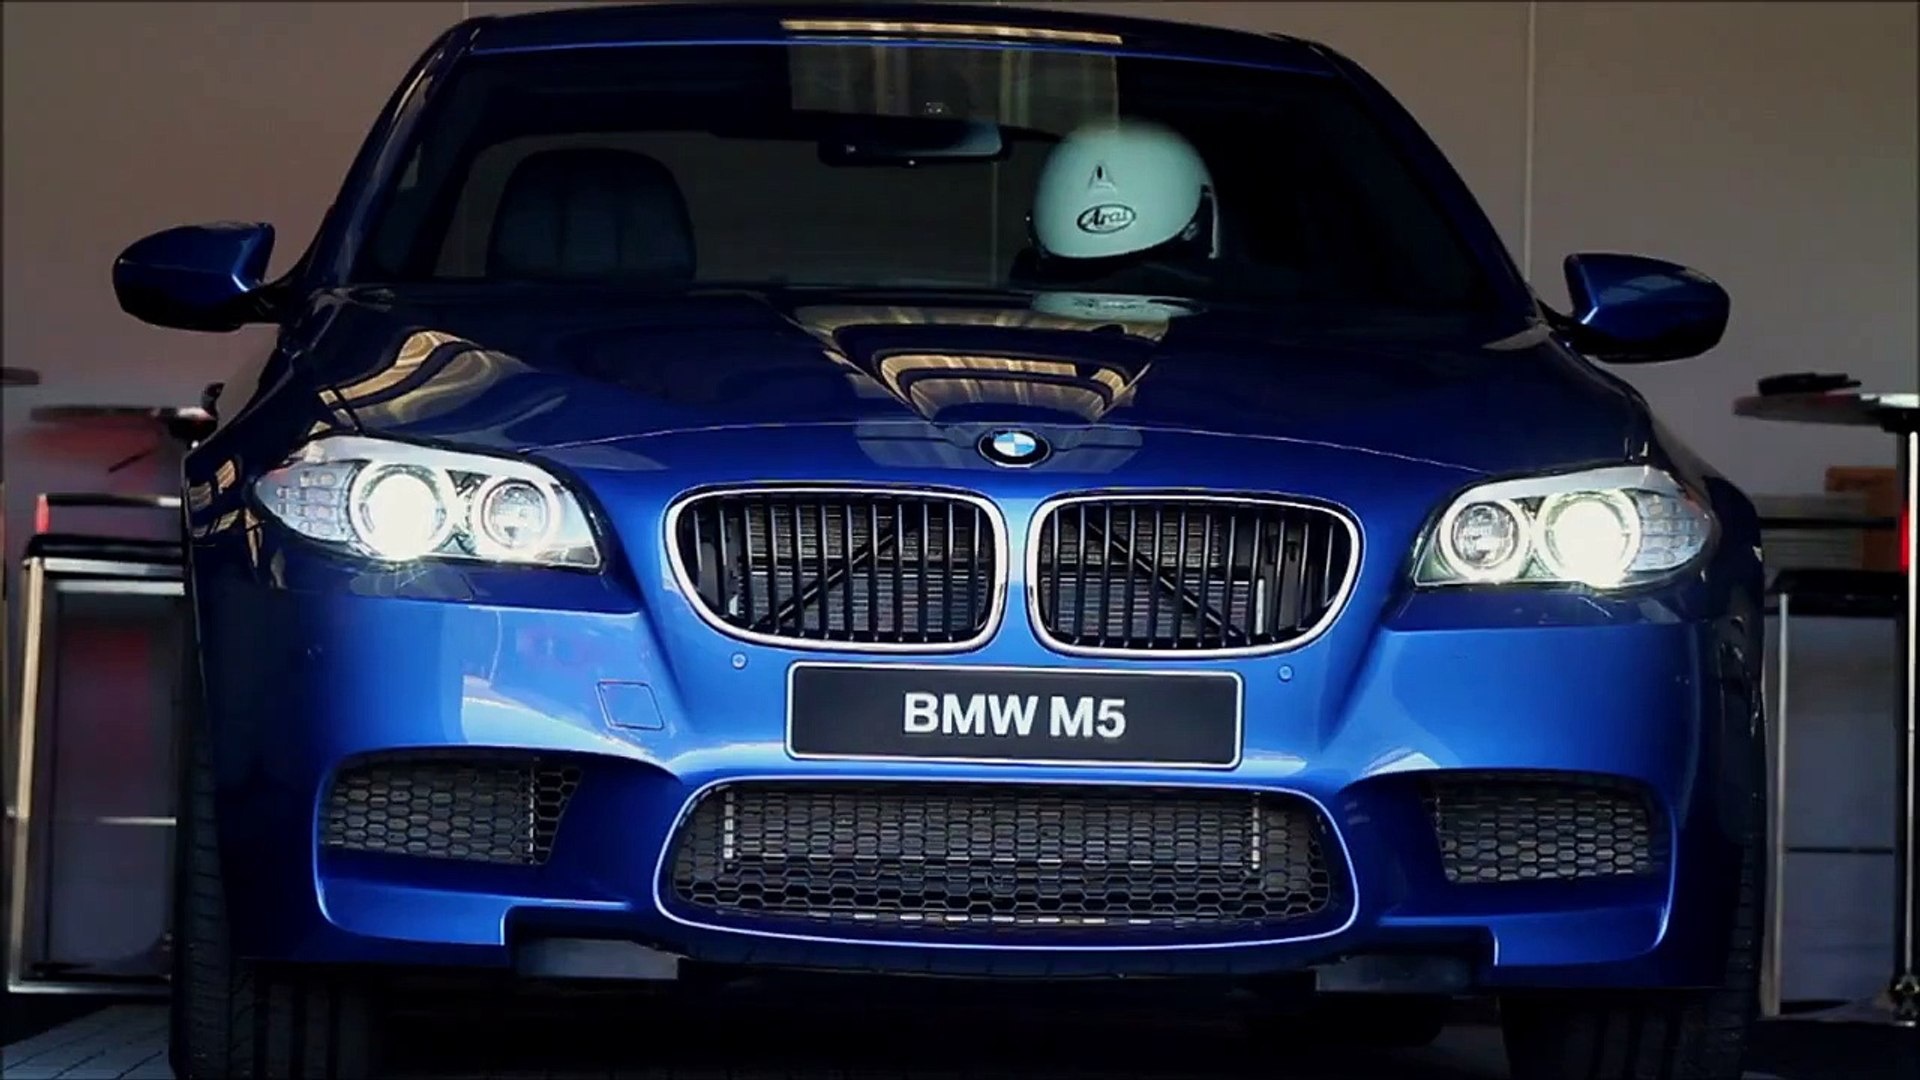 First Drive New Bmw M5 On Laguna Seca Raceway Video Dailymotion